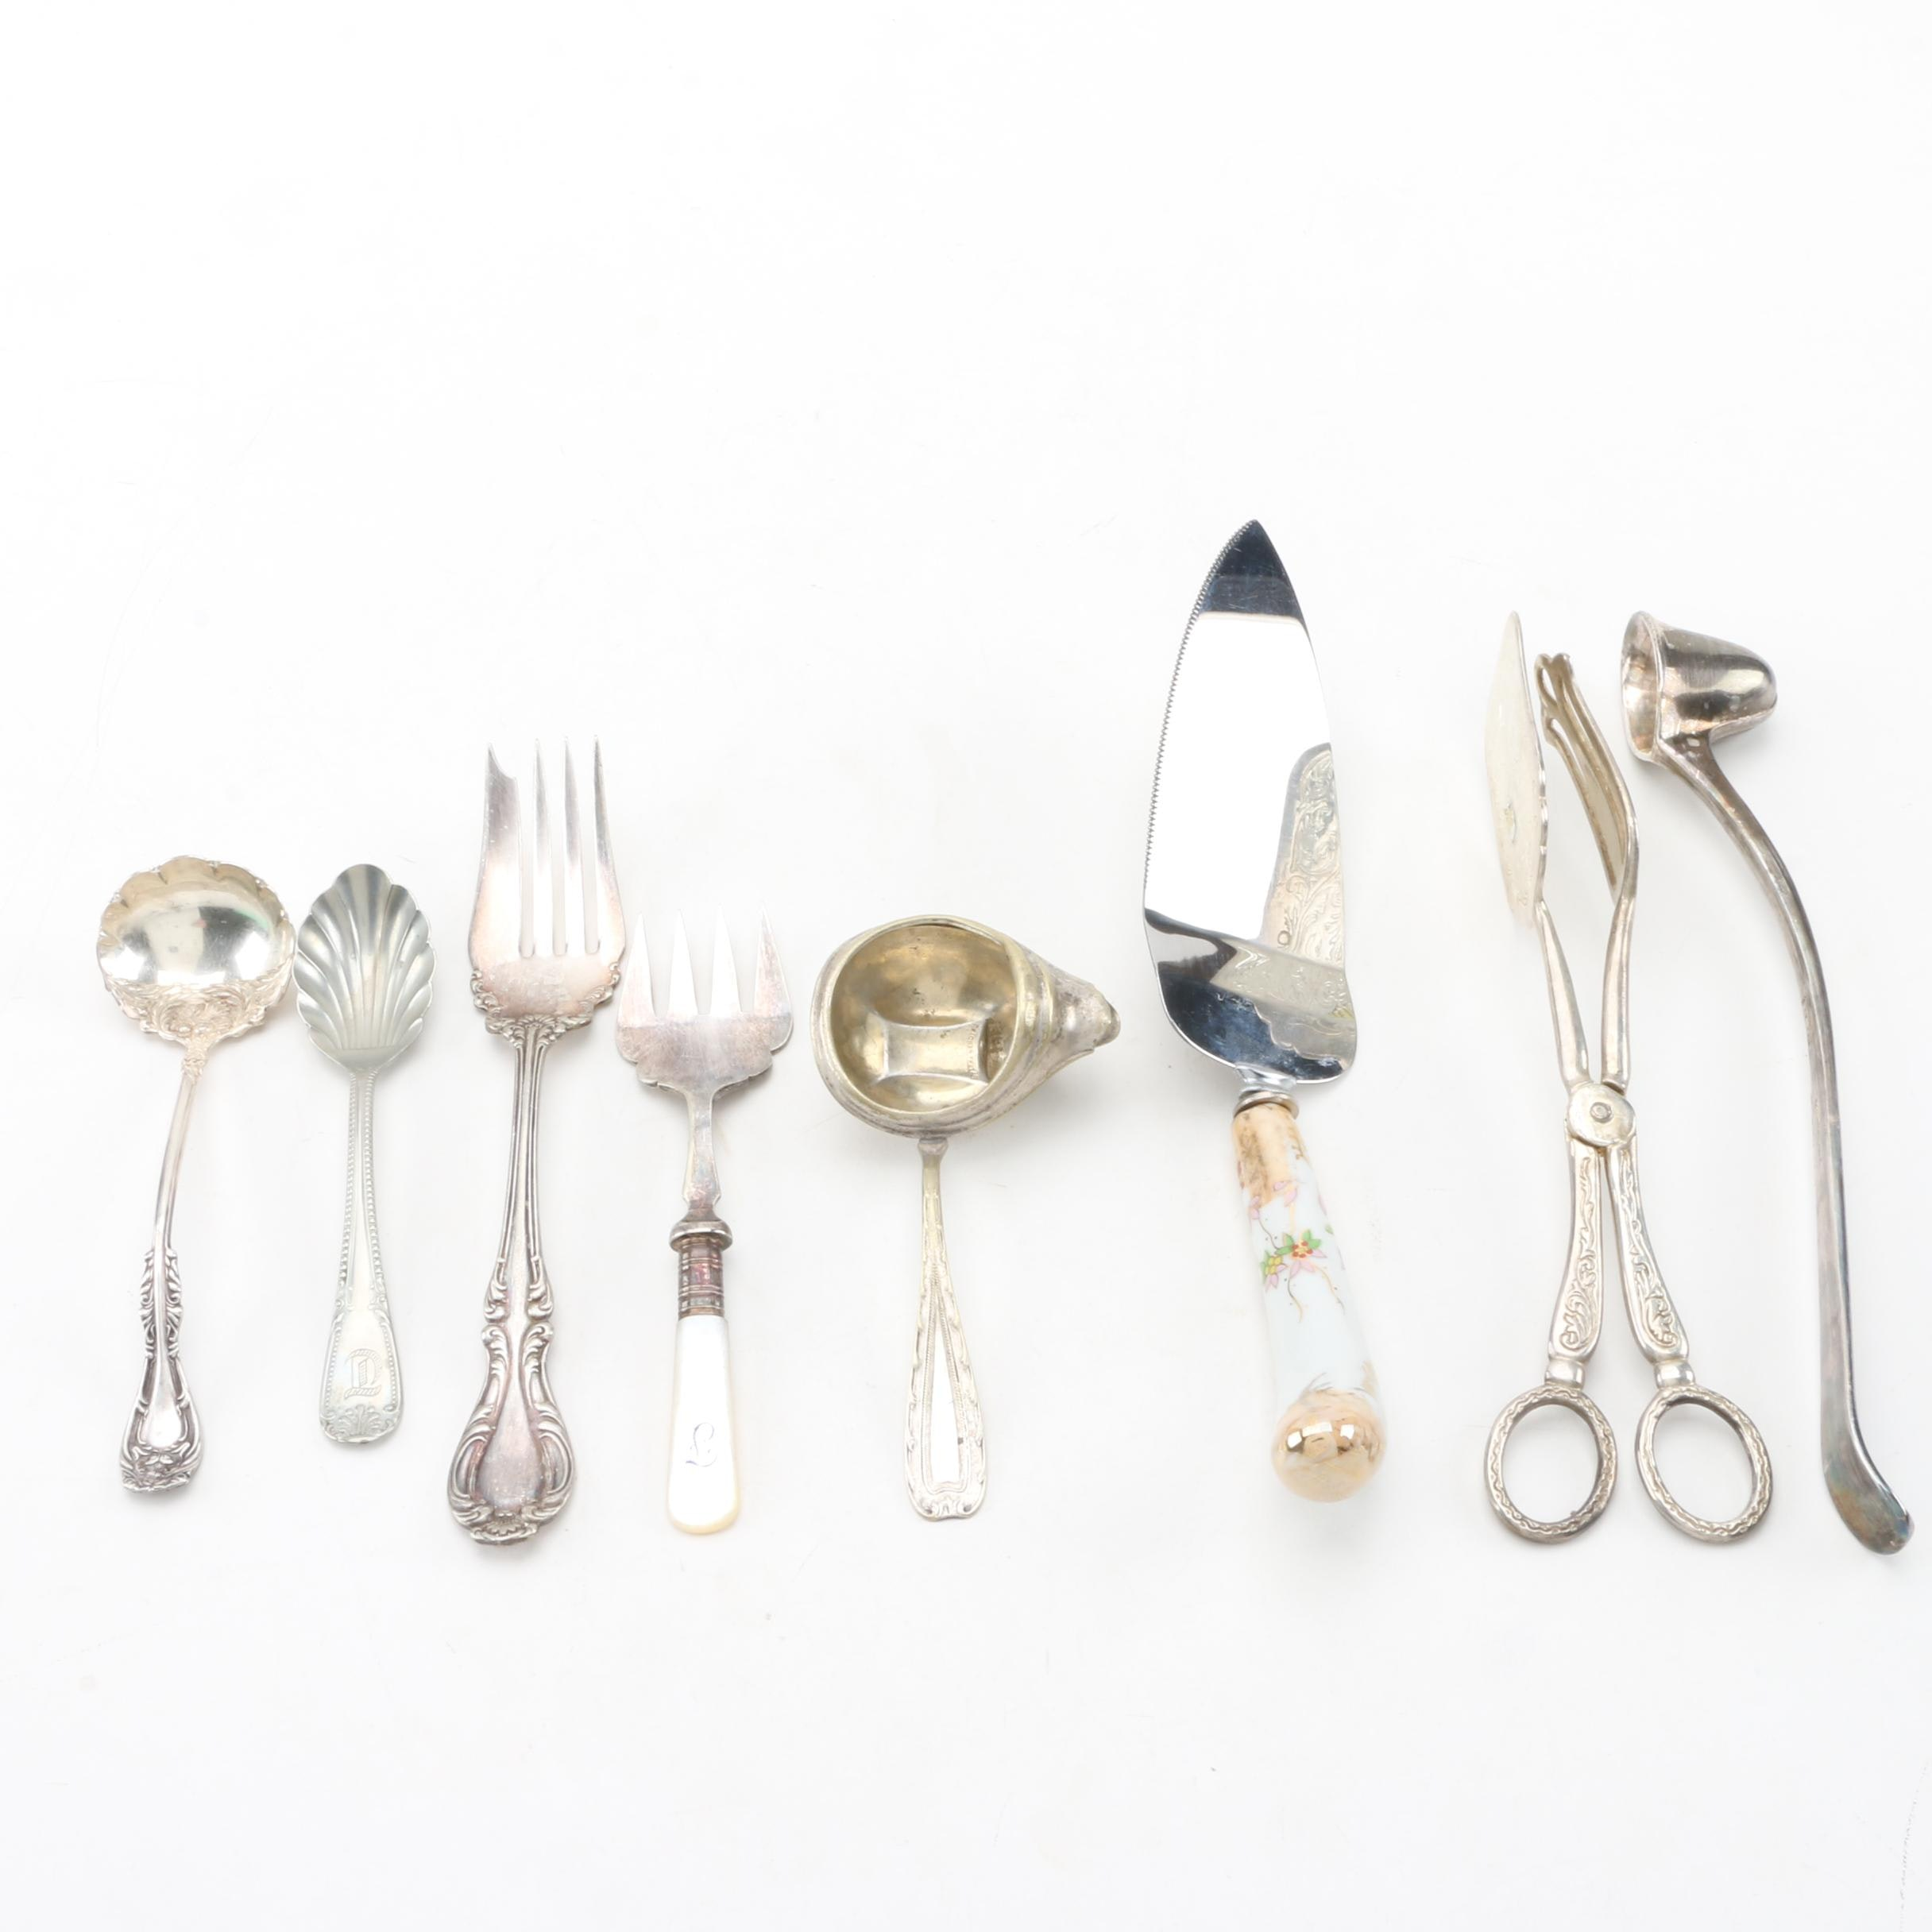 Sheffield Silver Co. Snuffer, Wallace Pastry Fork and More Silver Plate Flatware